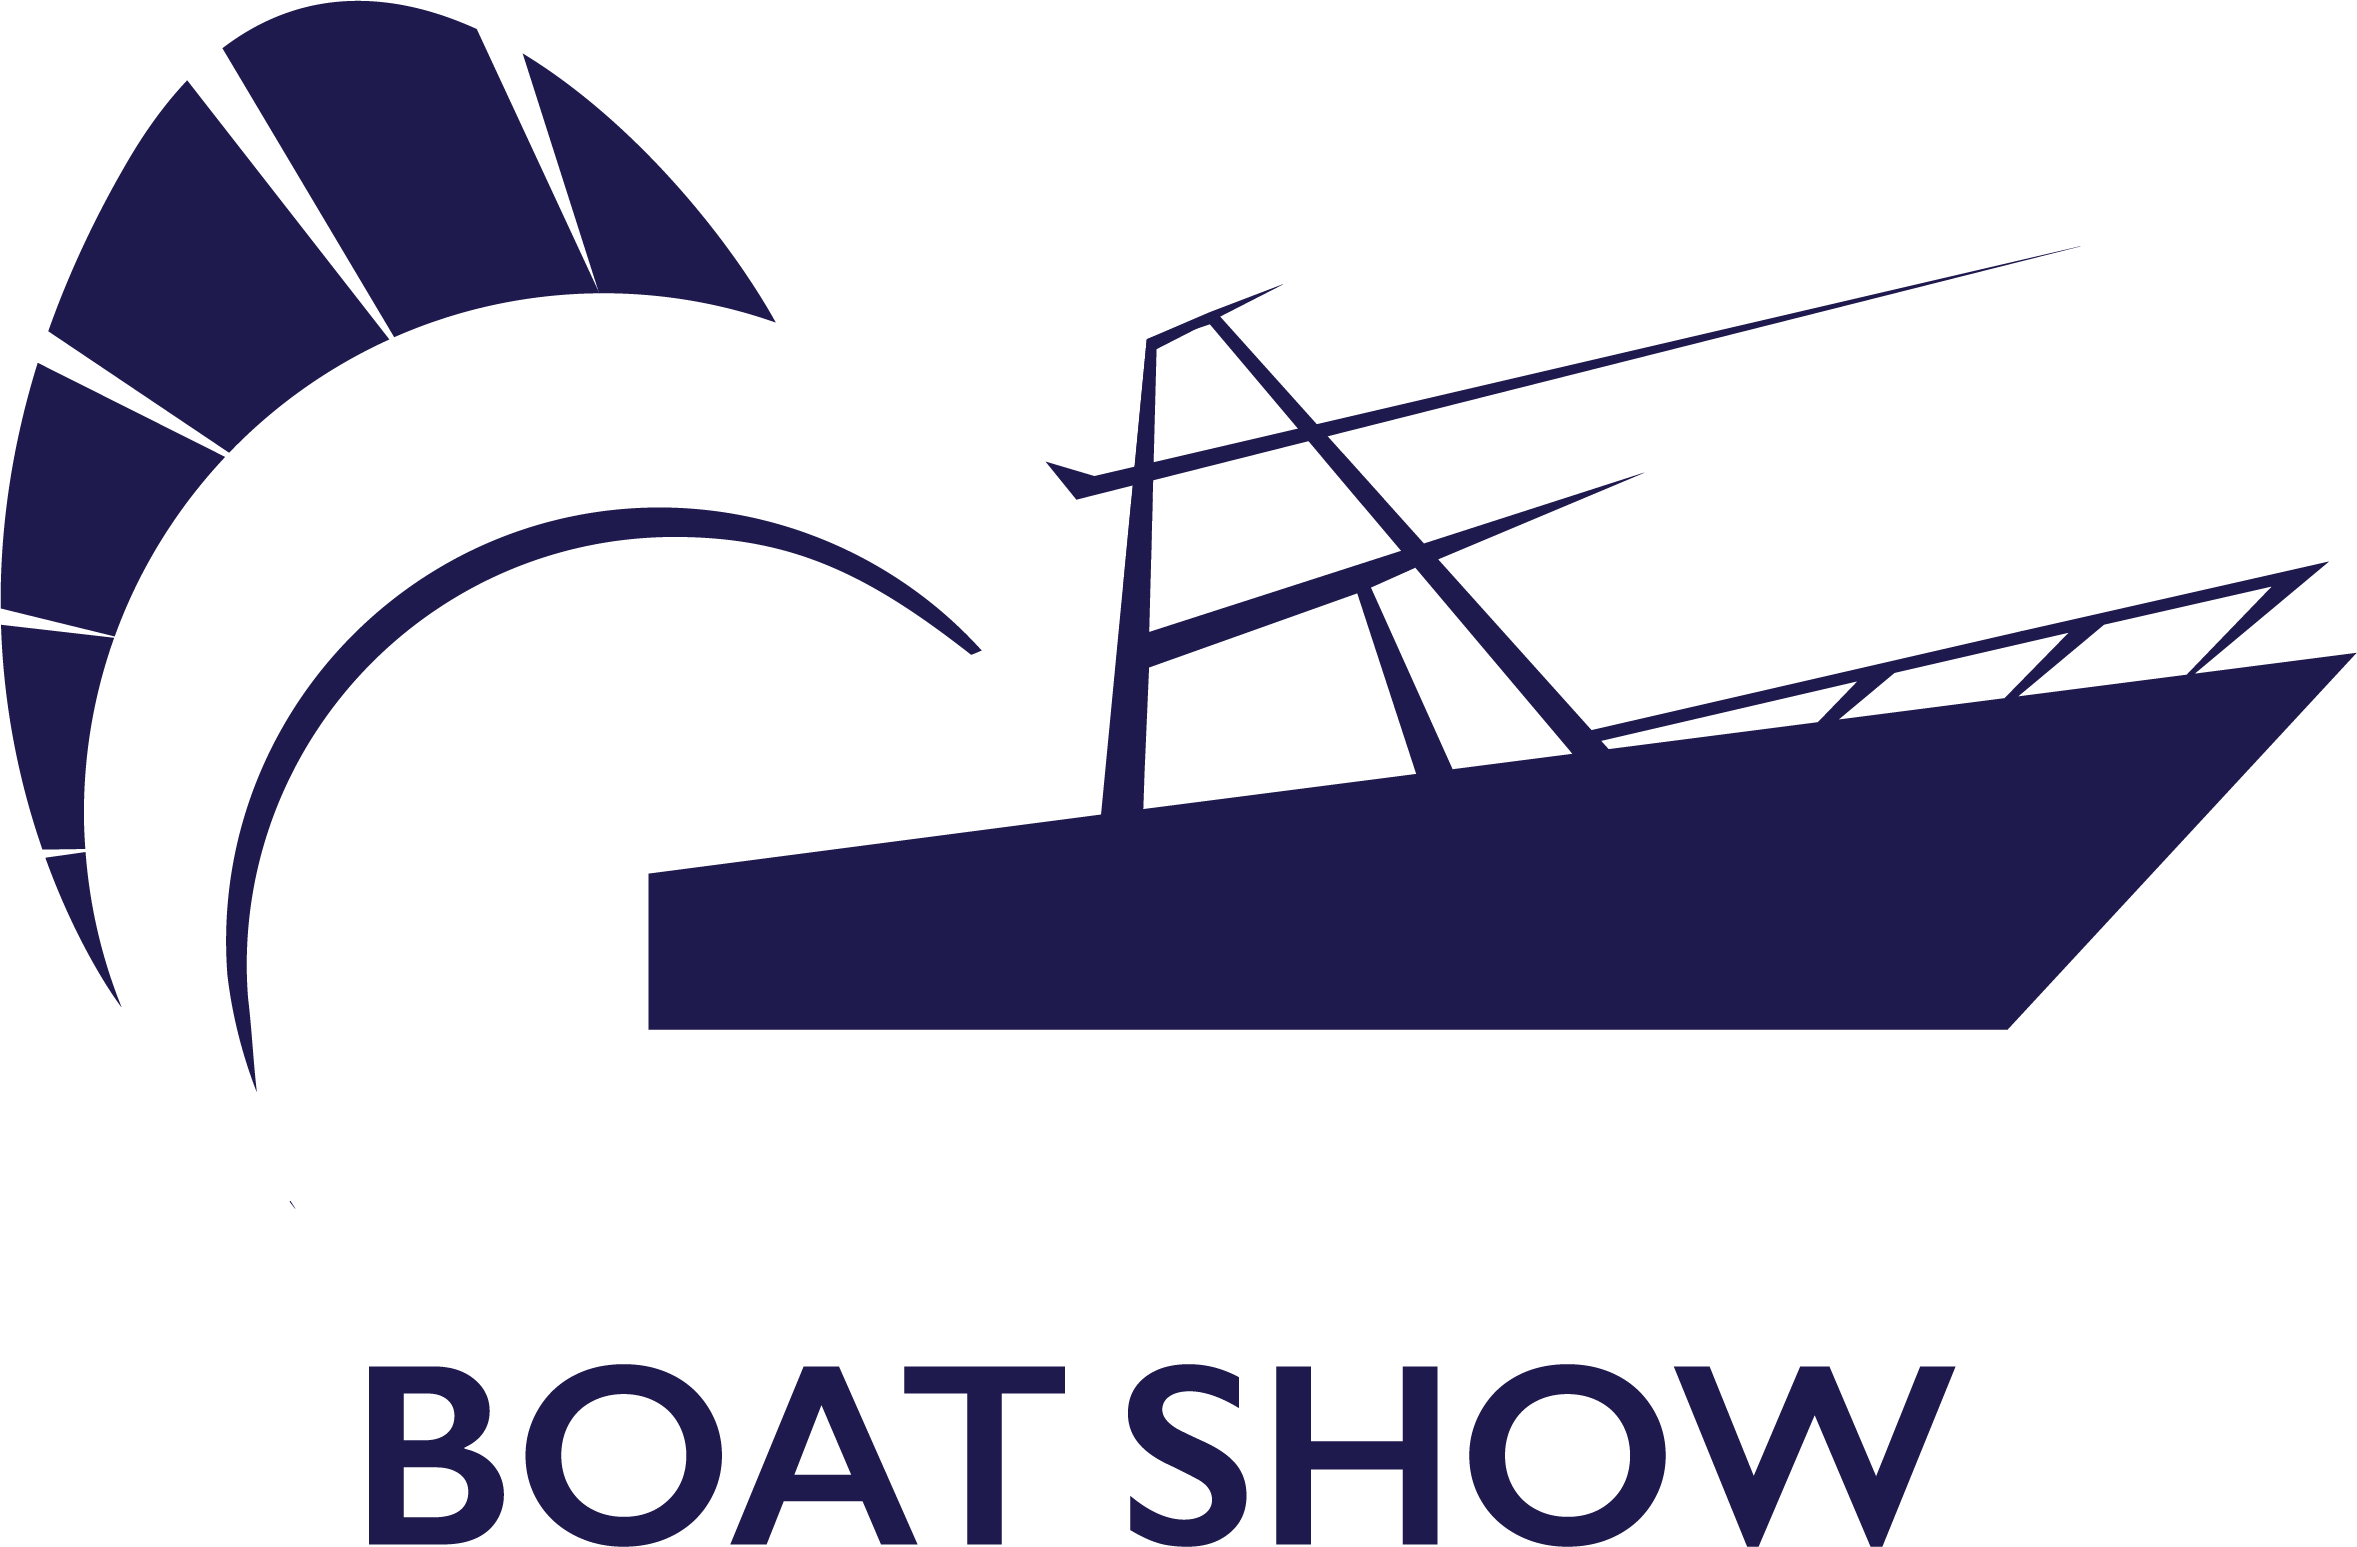 Stuart Boat Show Logo 2018 in Navy and White with a Transparent Background